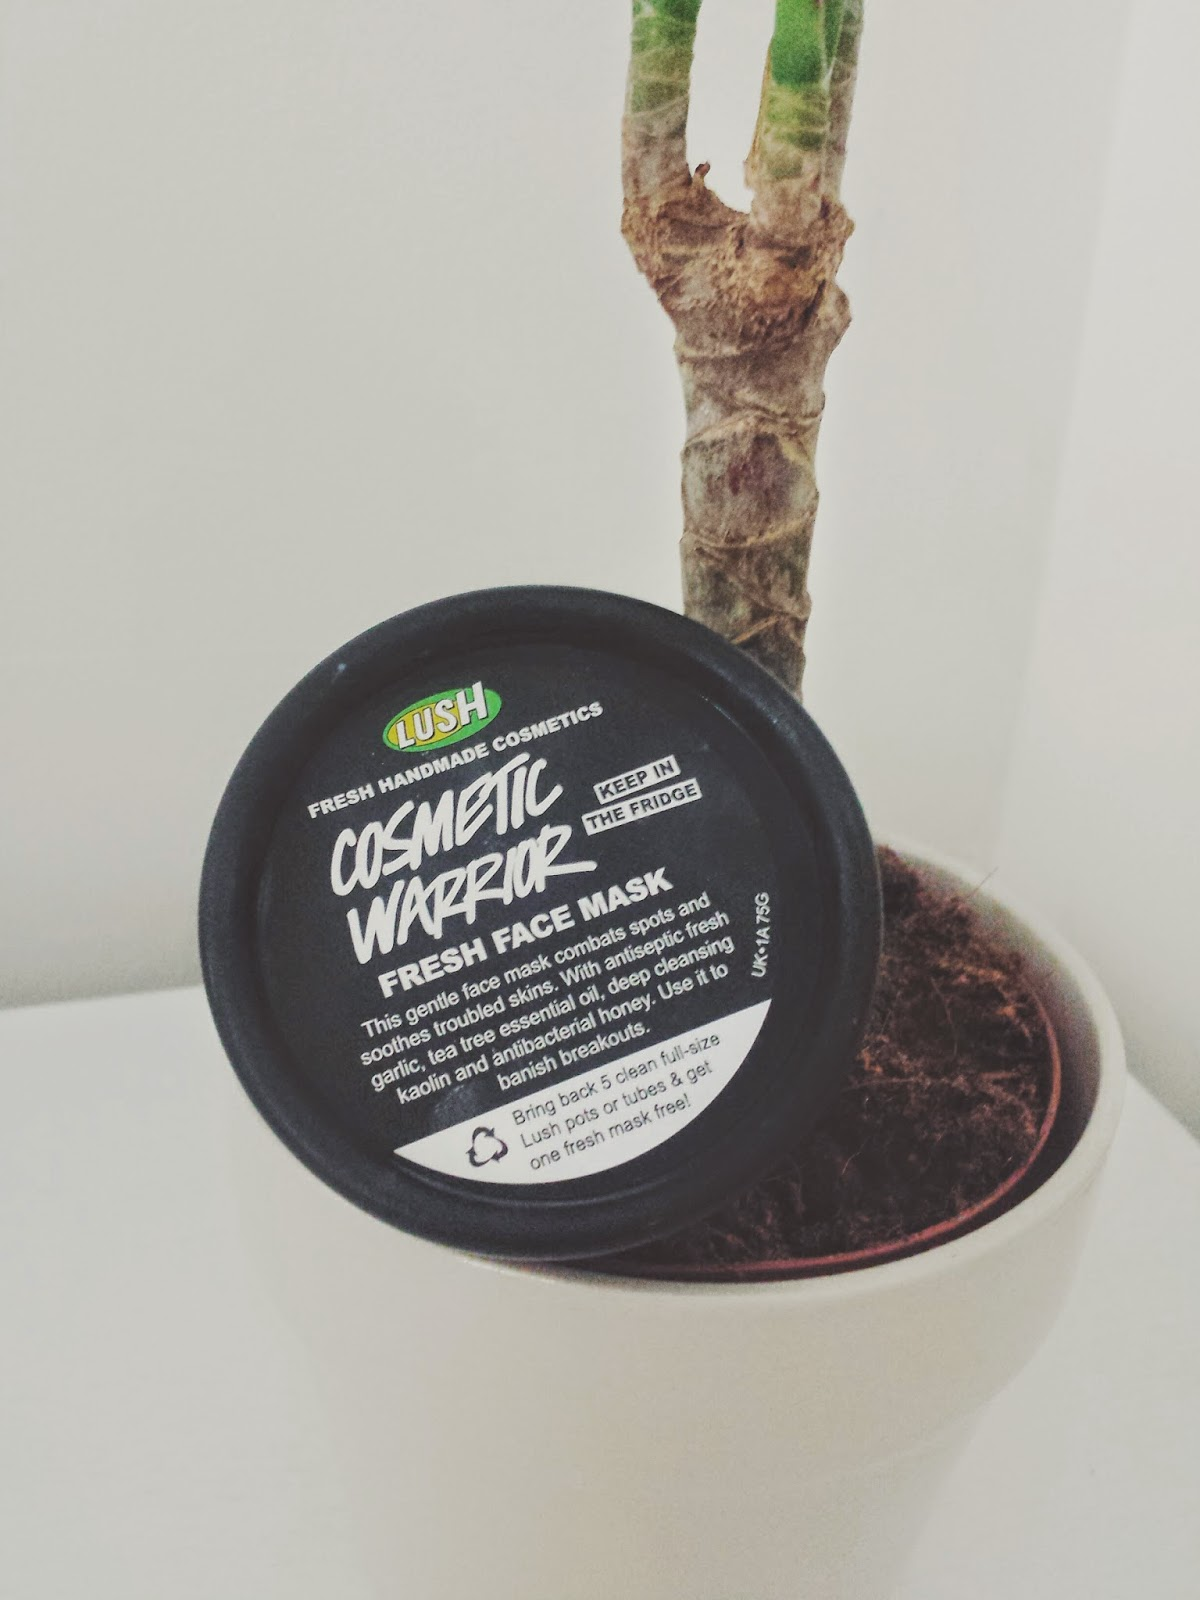 Cosmetic Warrior Face Mask - LUSH